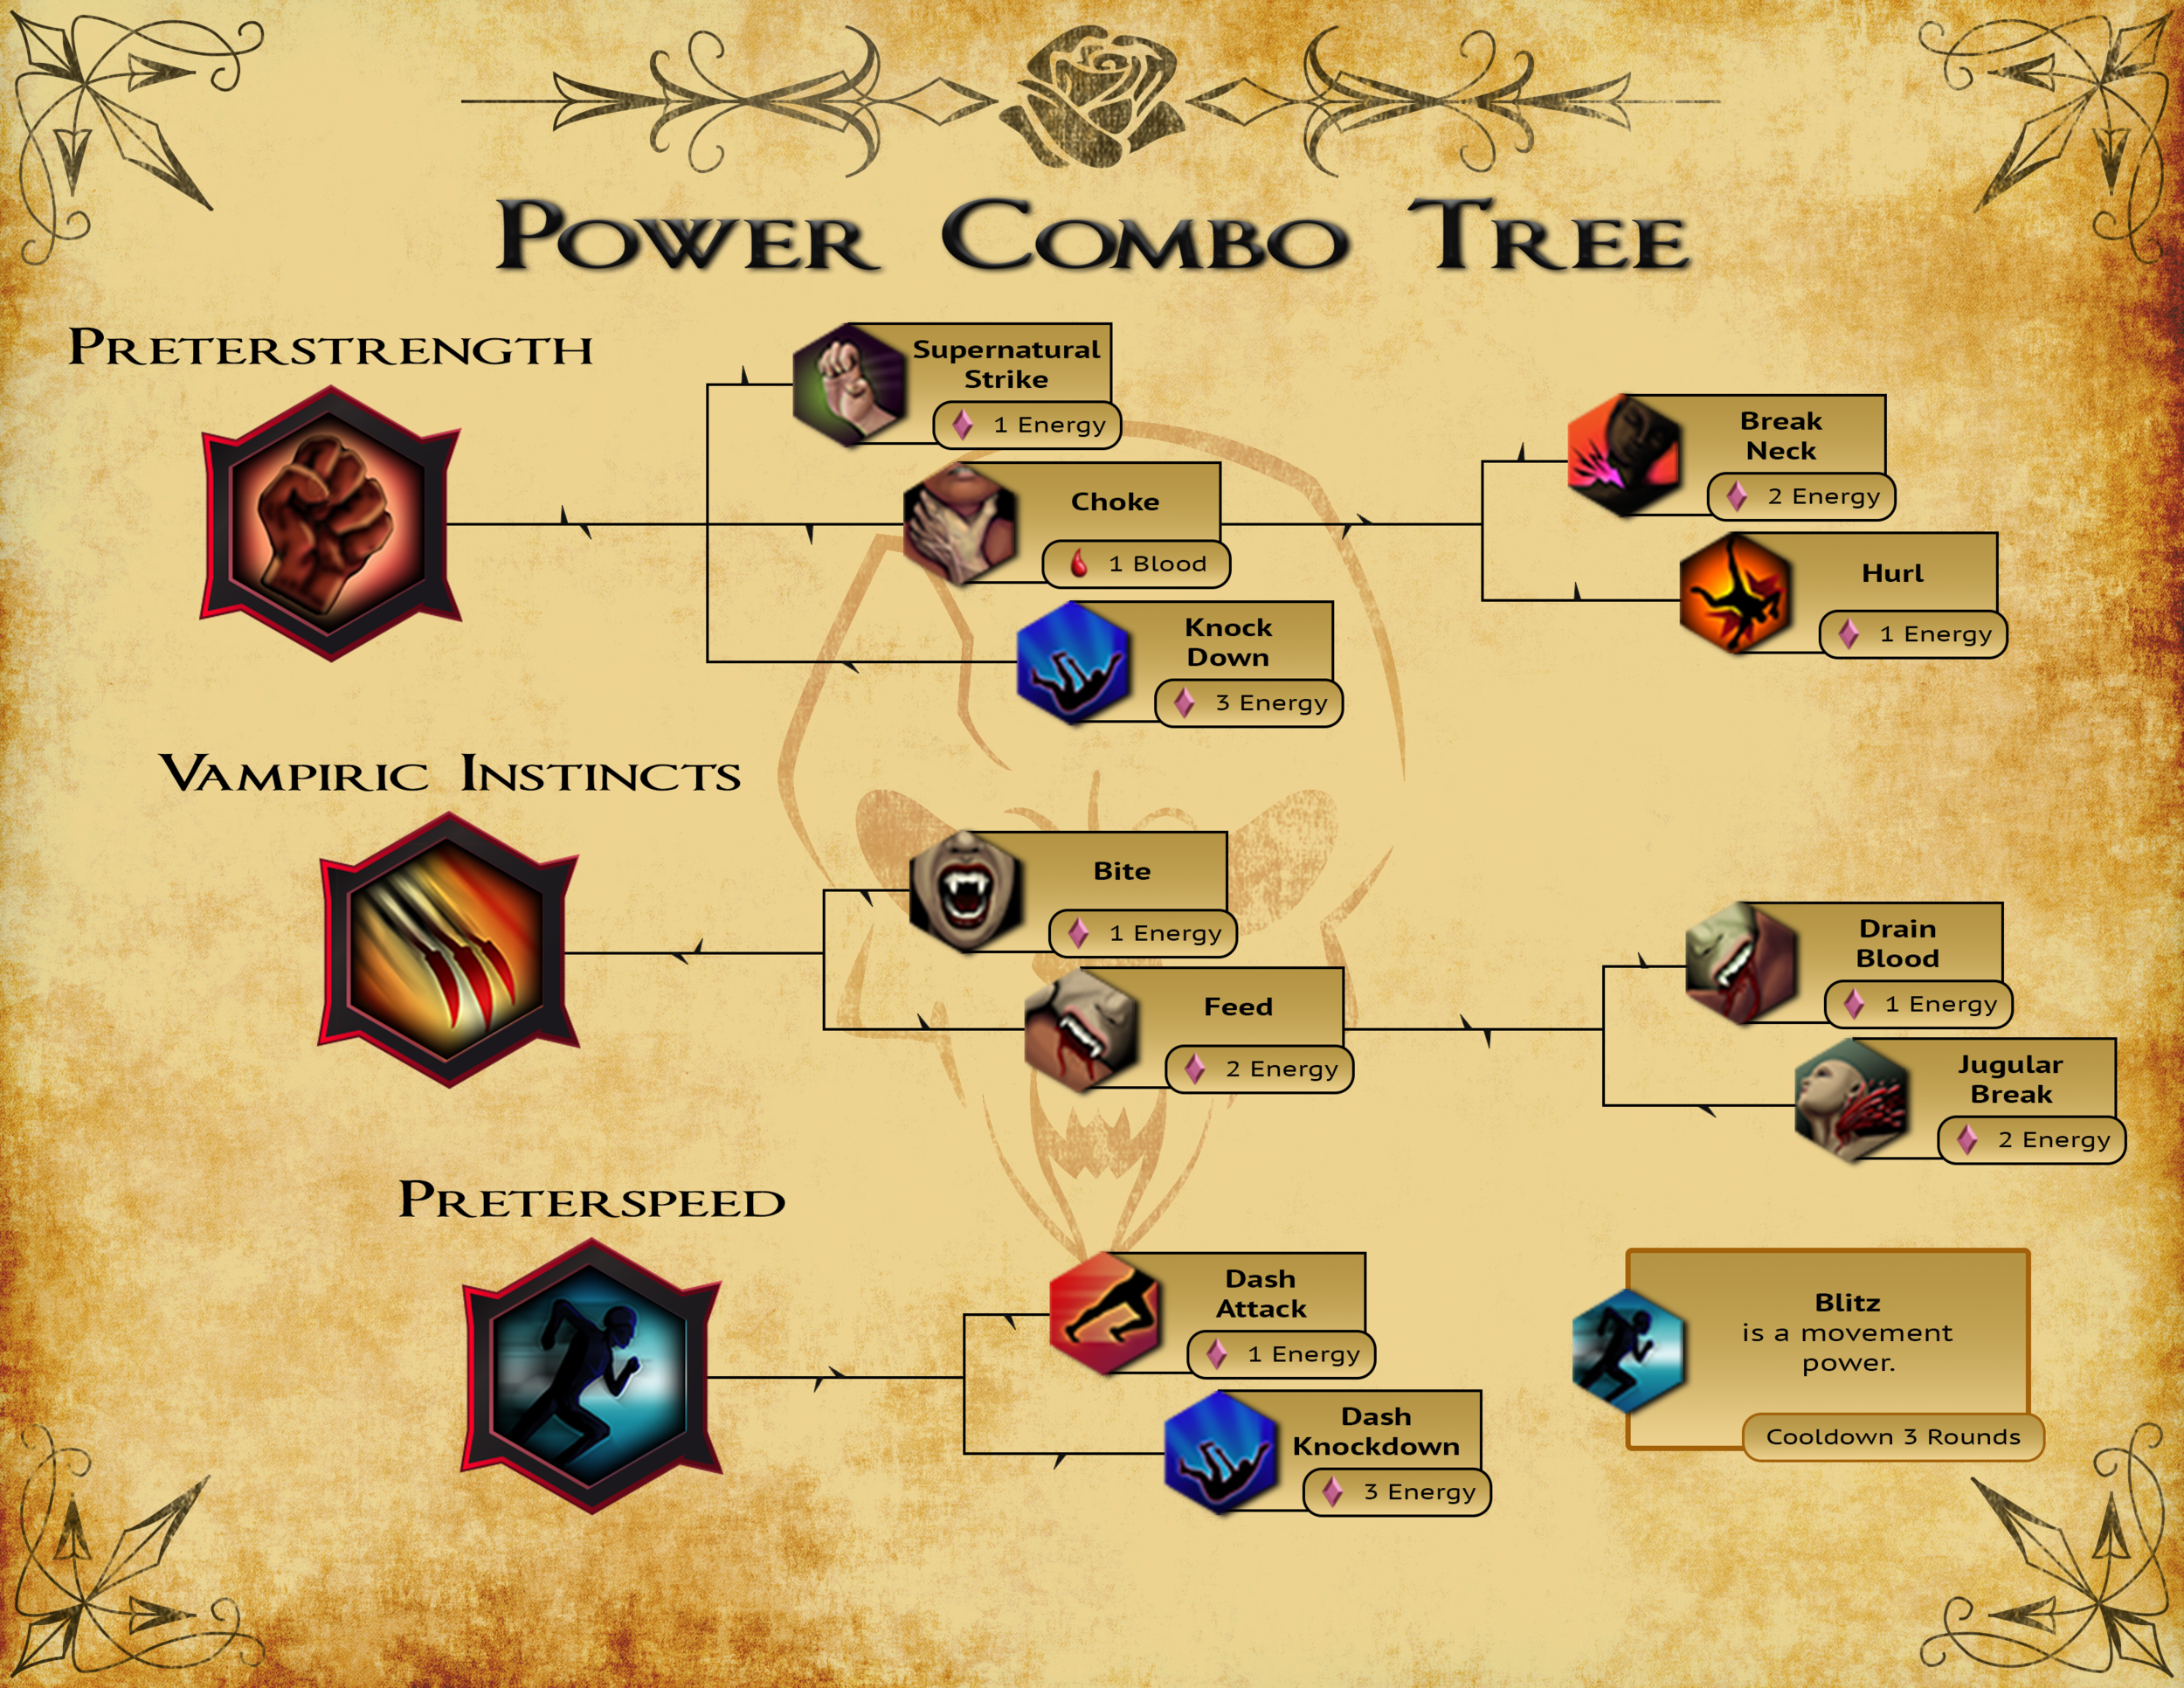 The above power tree shows a glimpse of the combat abilities, focusing specifically on the supernatural strength and supernatural speed branches of the vampire bailiwick.